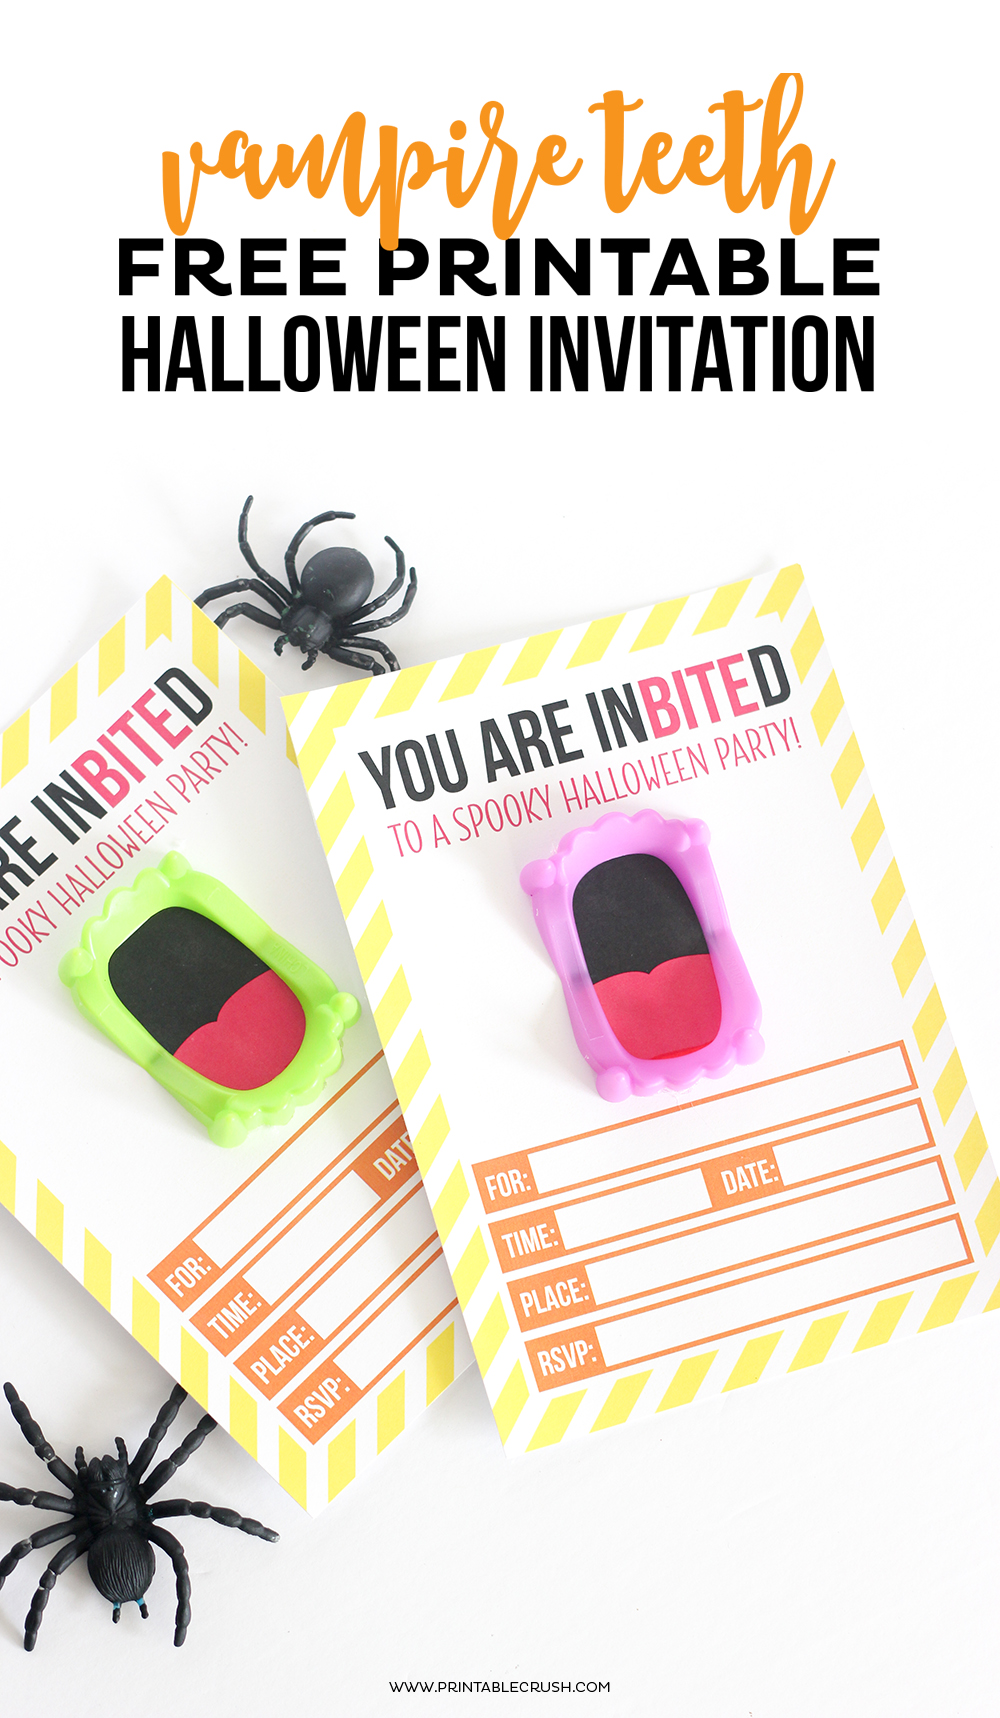 photograph relating to Free Printable Halloween Invitations identified as Cost-free Printable Vampire Halloween Invitation - Printable Crush